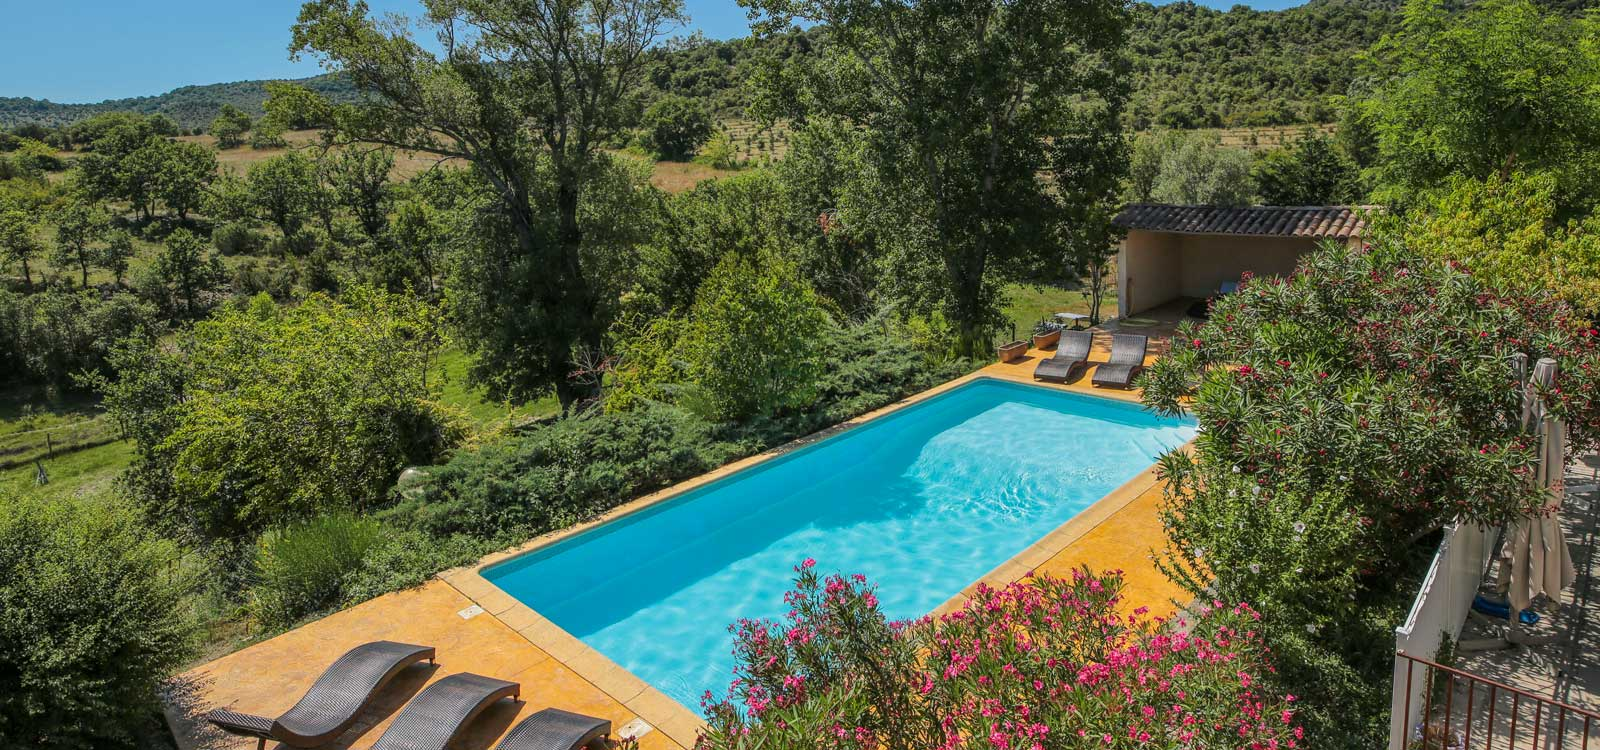 Gite ardeche g te vallon pont d 39 arc location gite de for Ardeche gites avec piscine